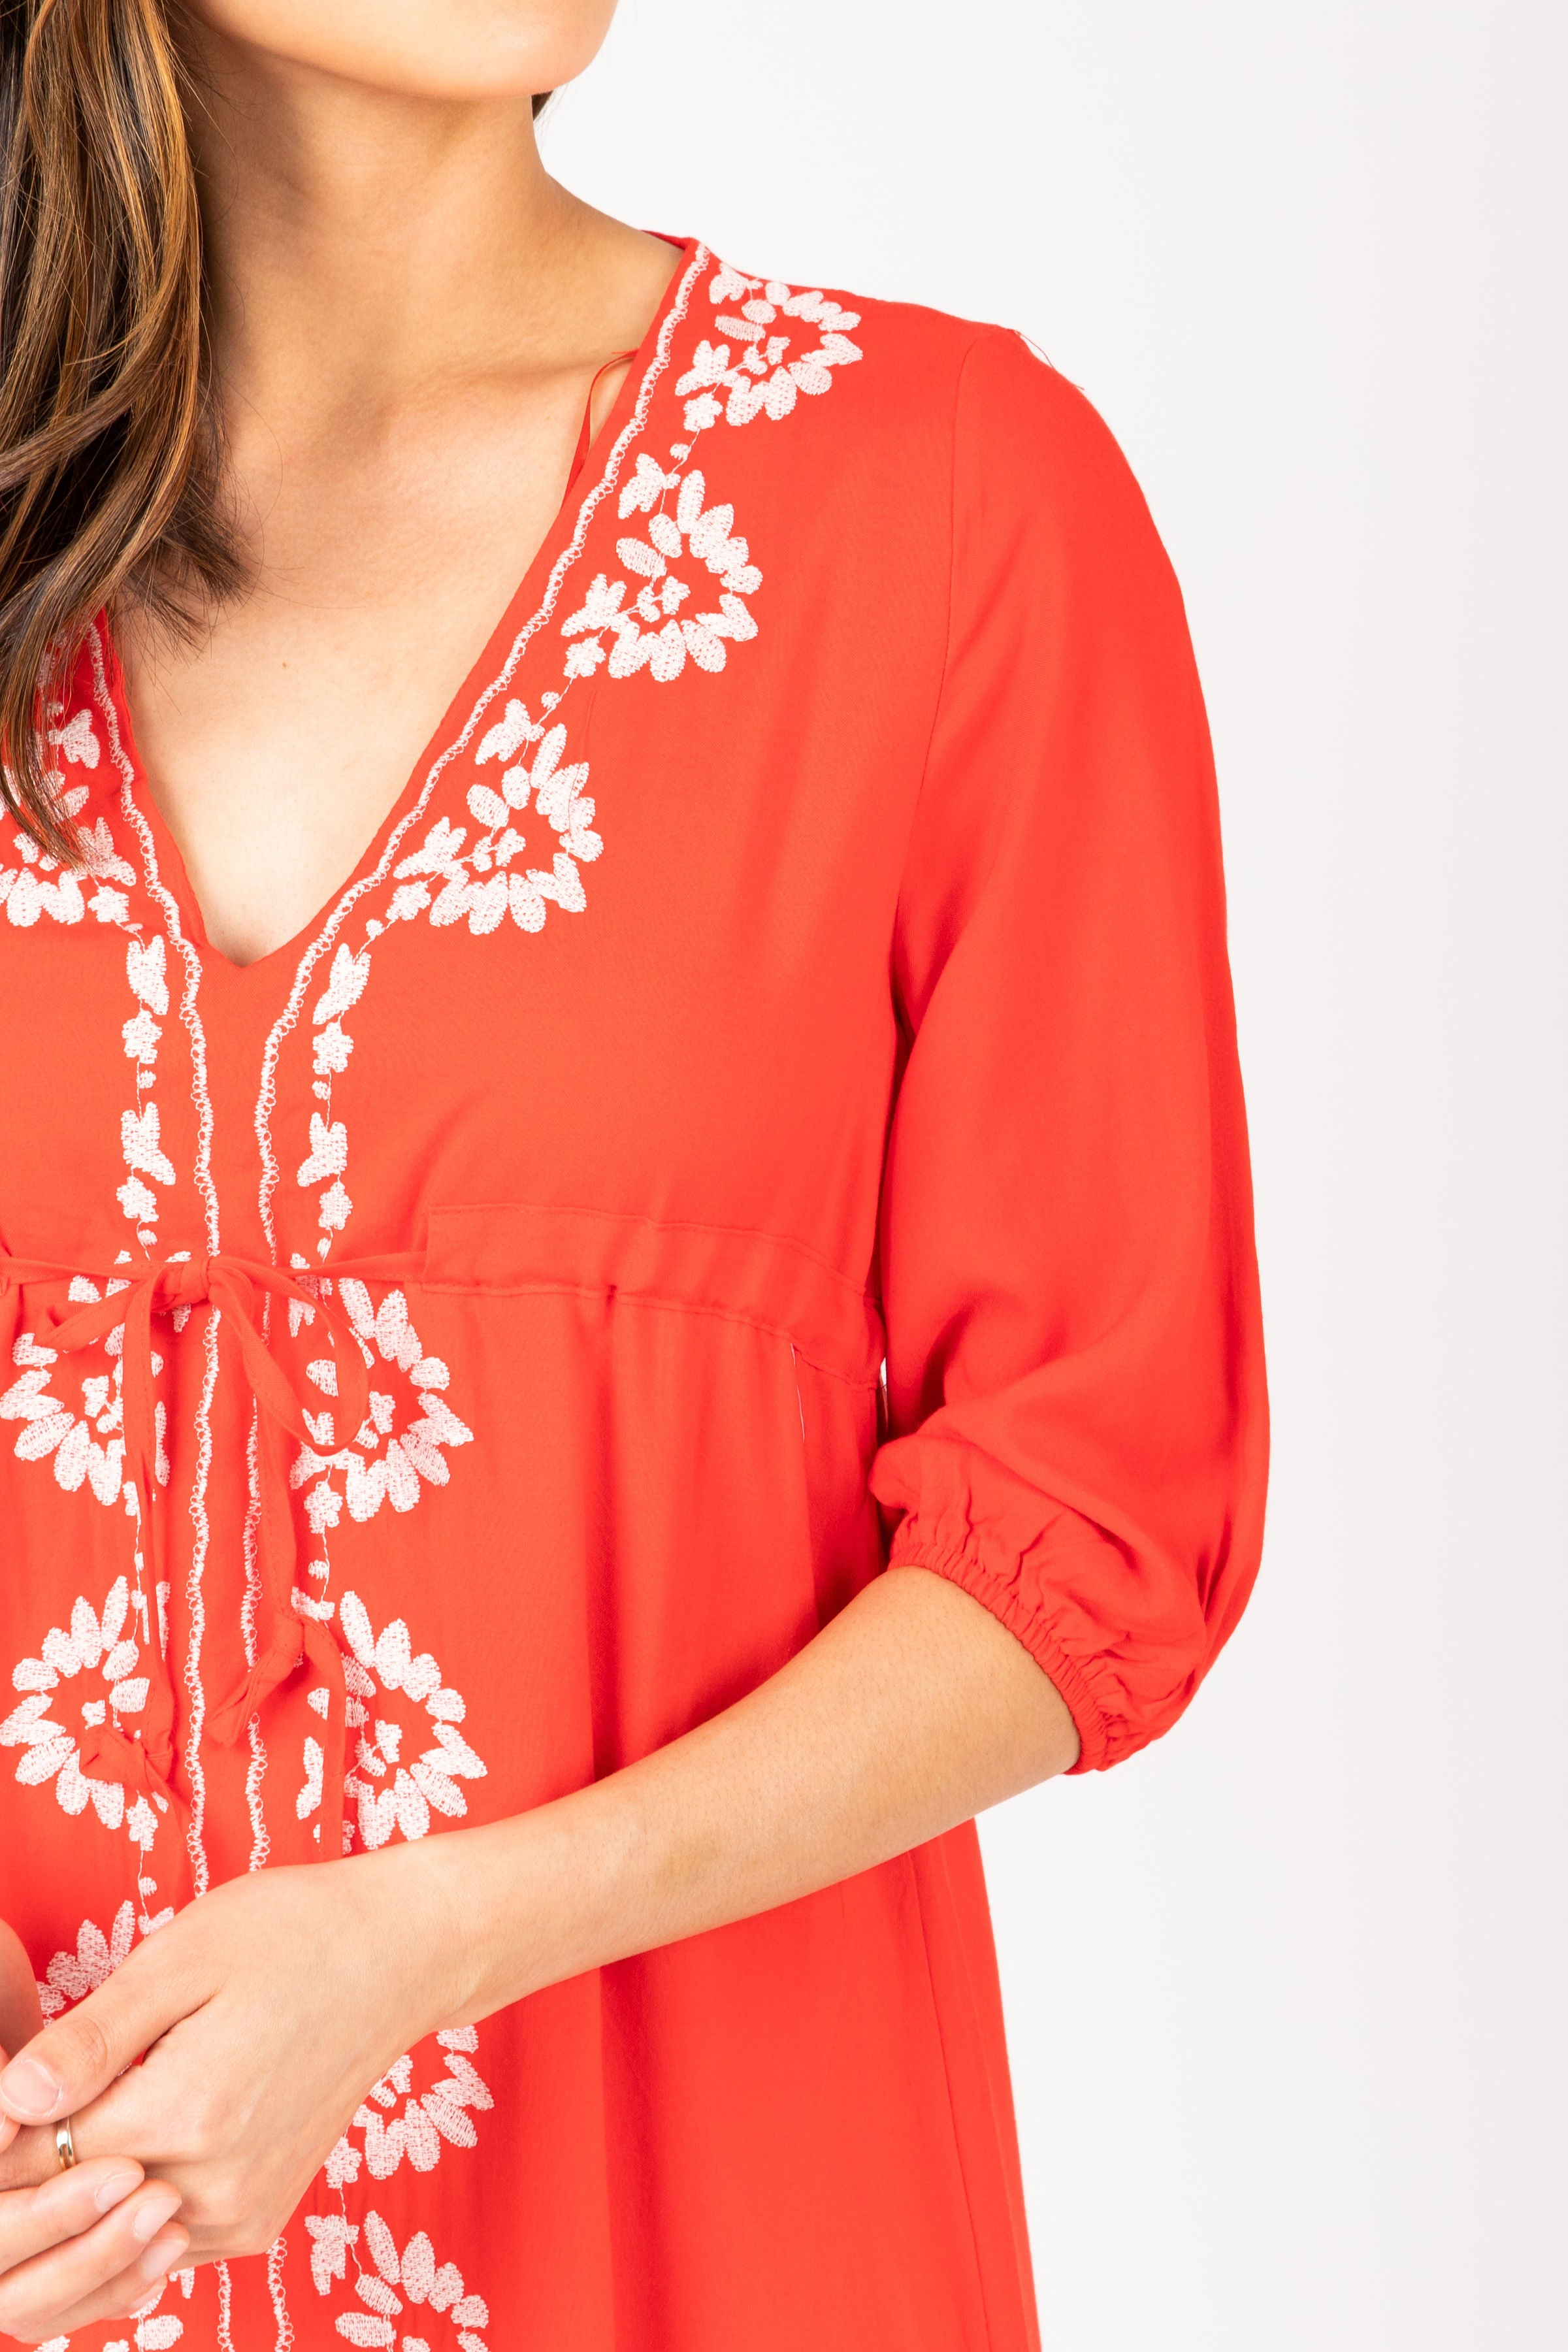 The Craving Floral Peplum Blouse in Poppy